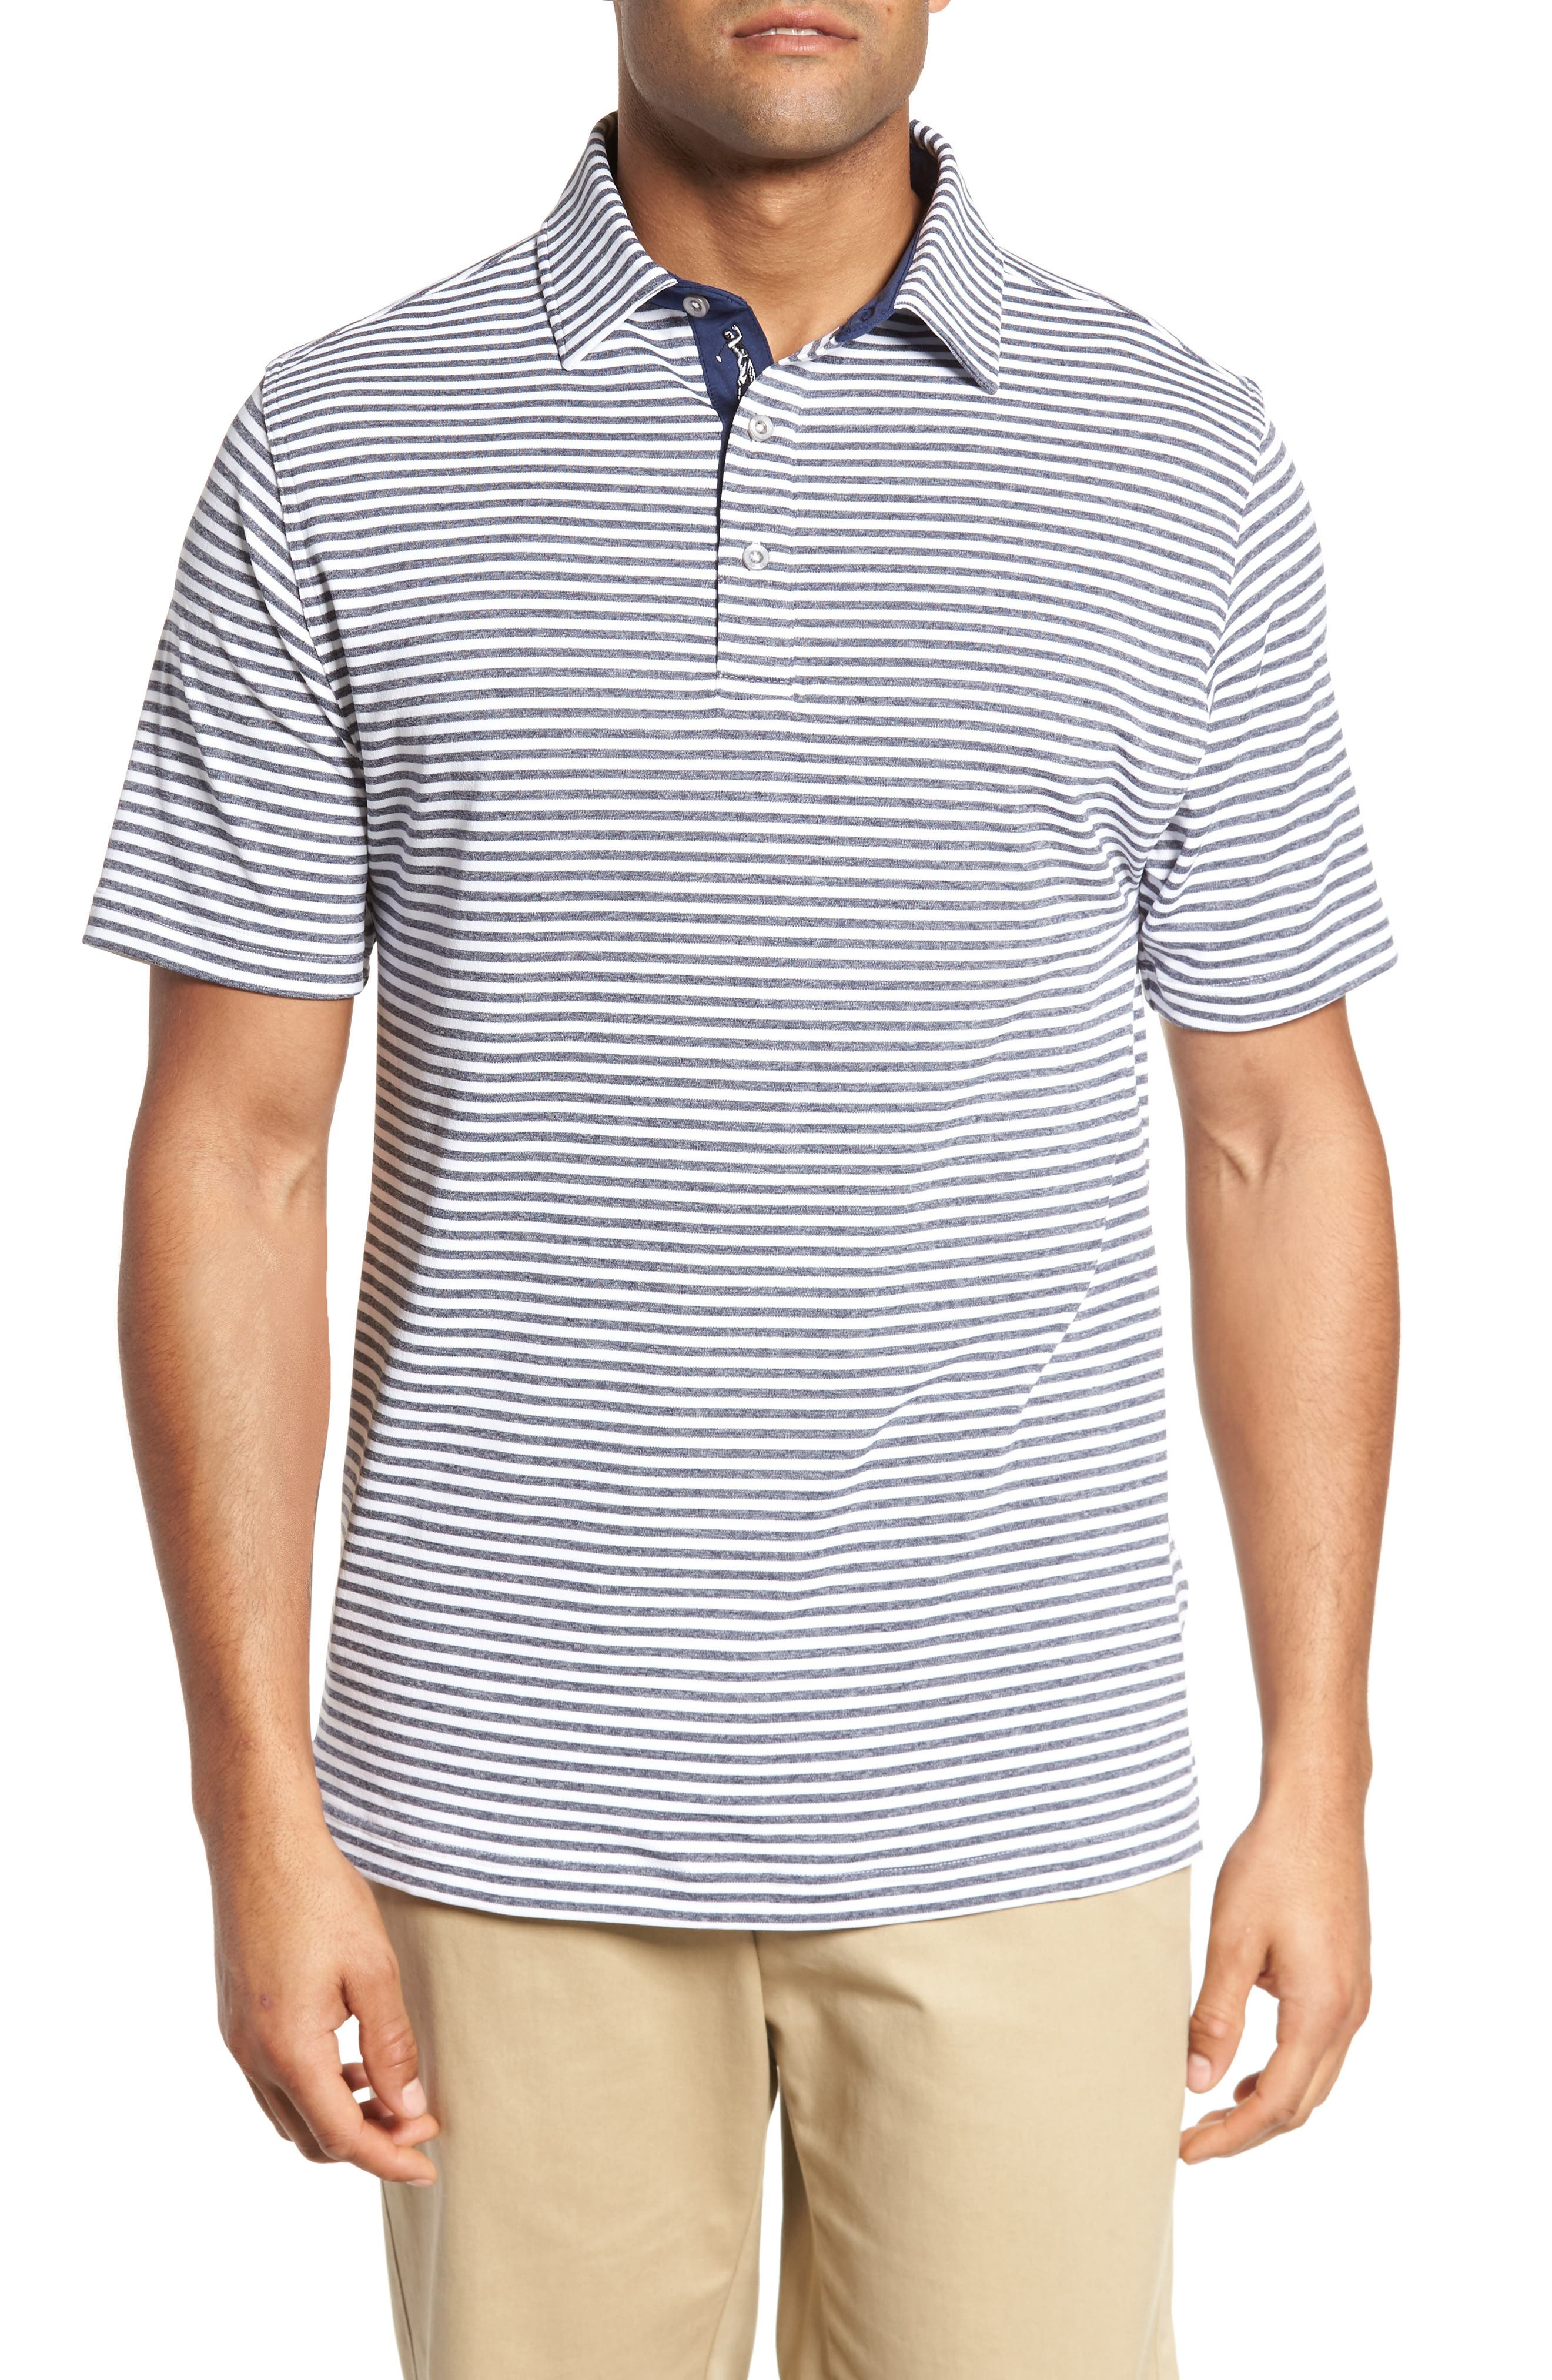 XH2O Tranquil Stripe Jersey Polo,                         Main,                         color, White